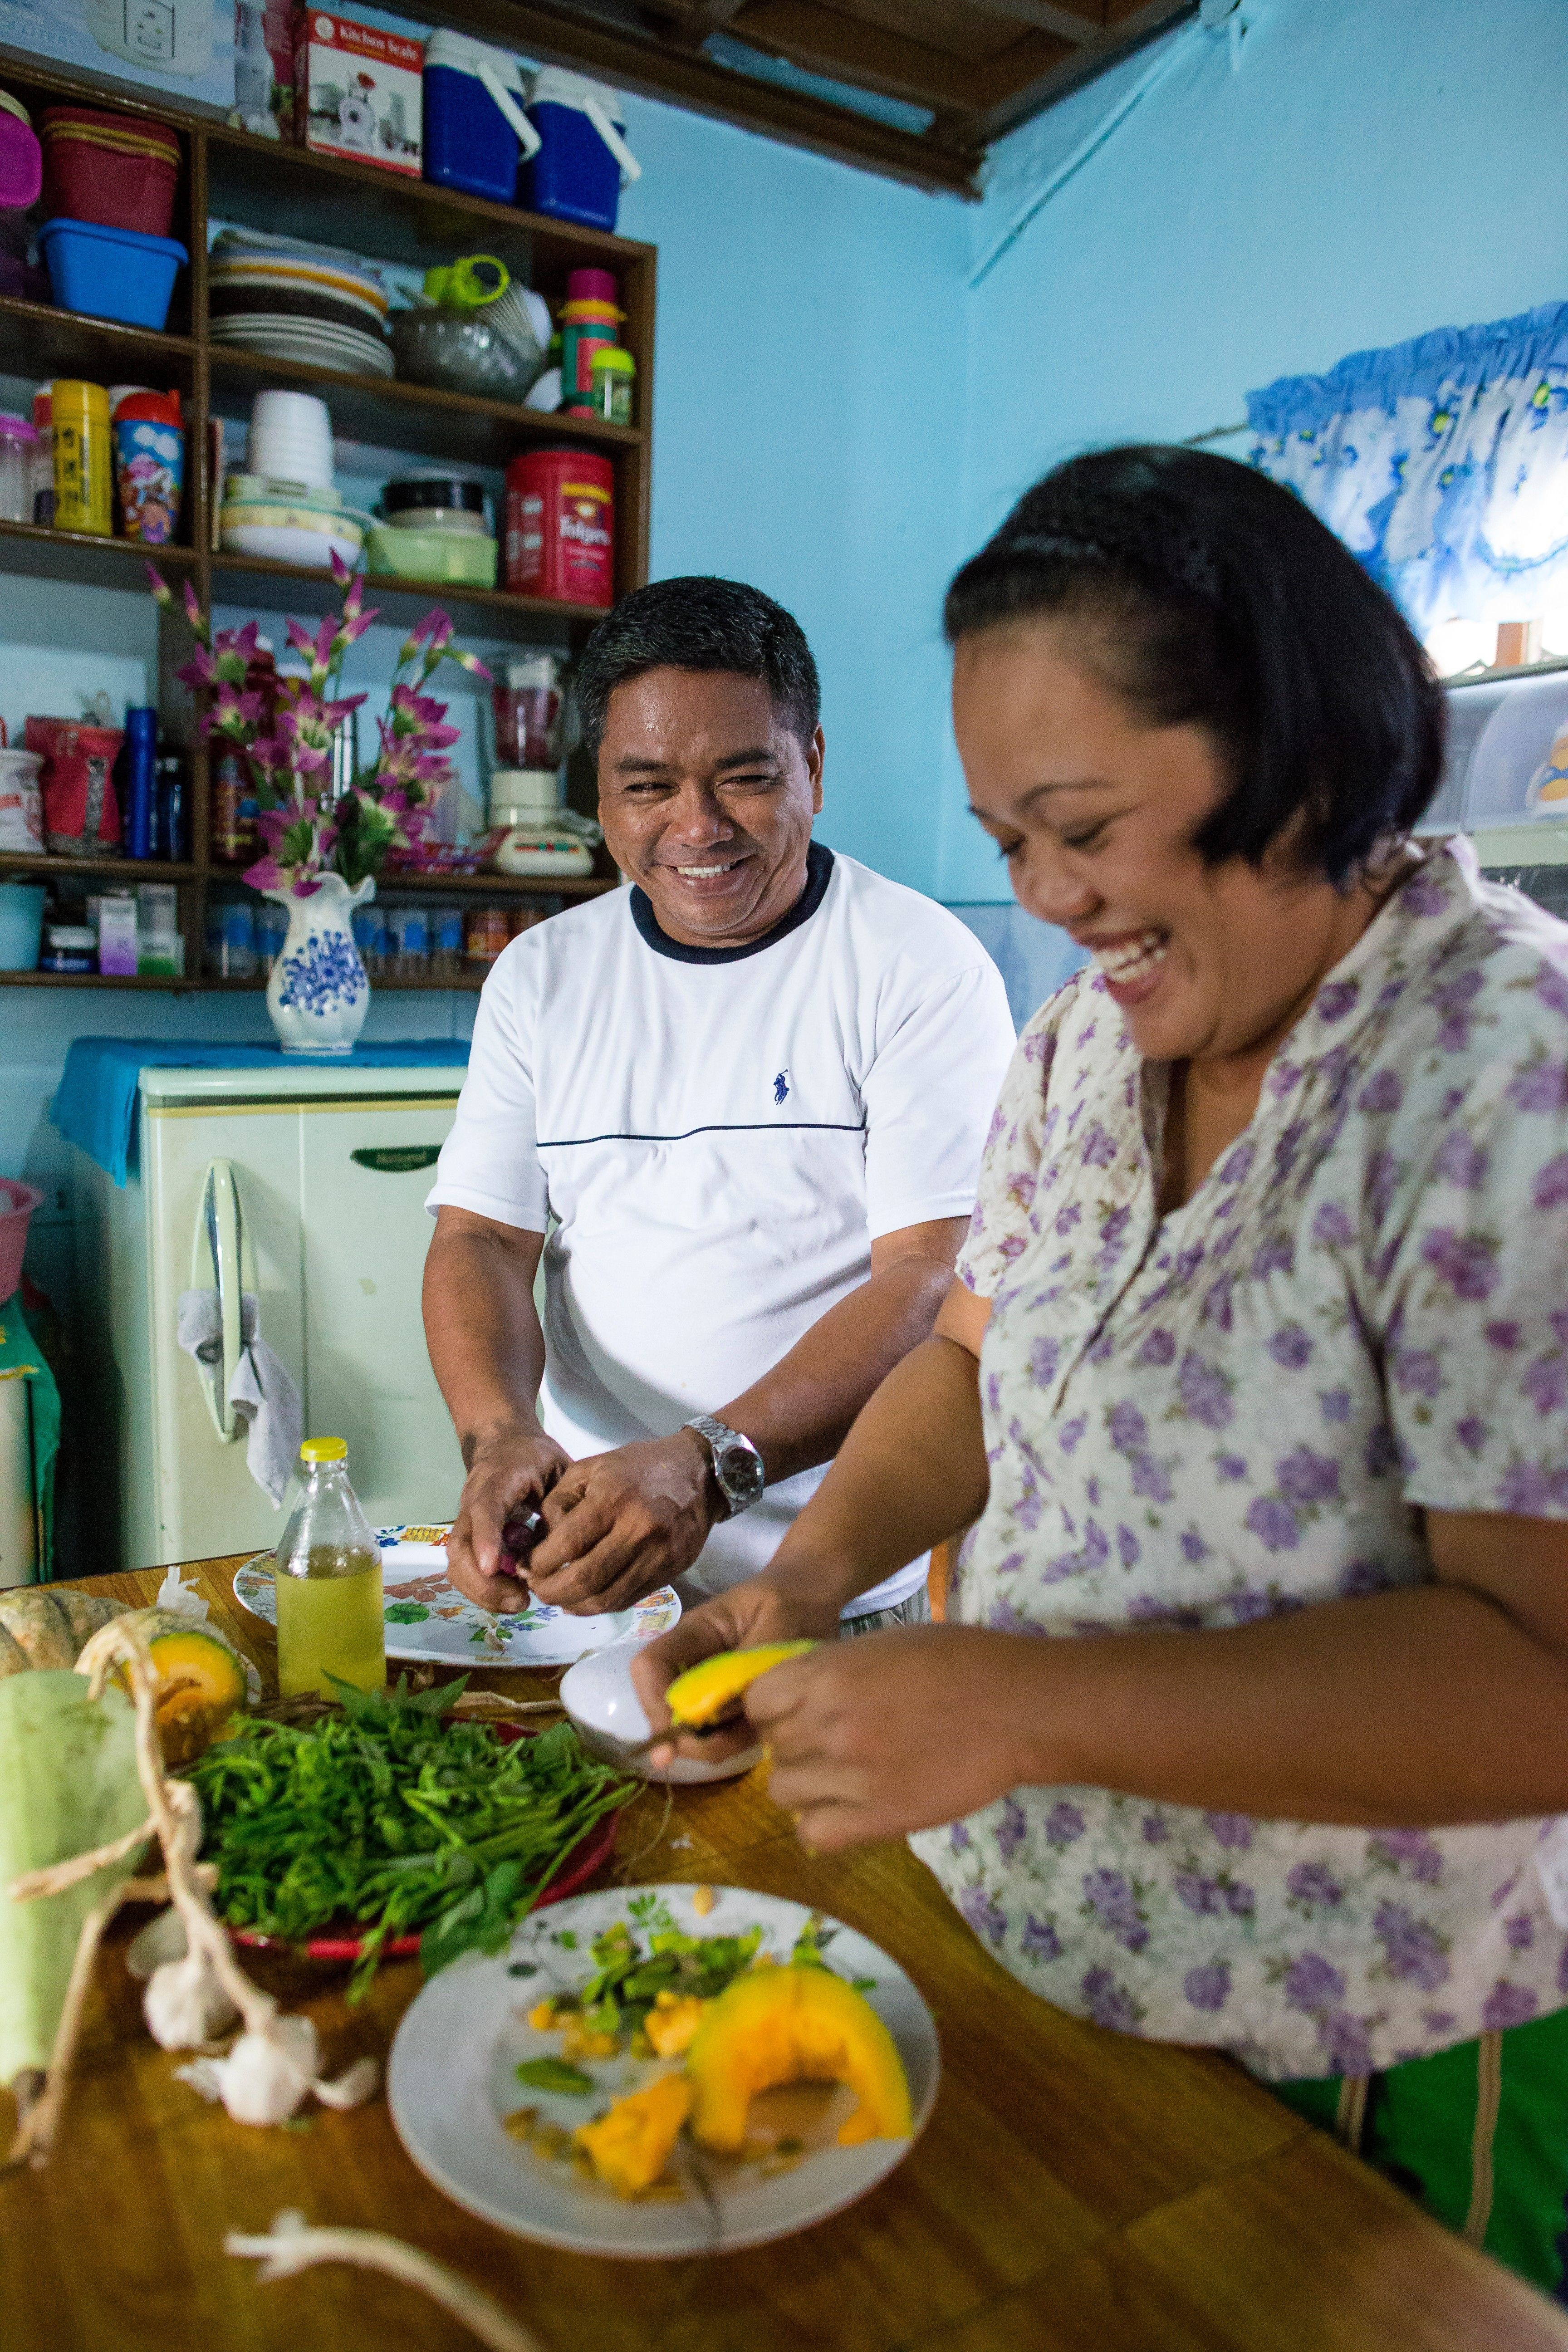 A couple from the Philippines standing in a kitchen and preparing food together.